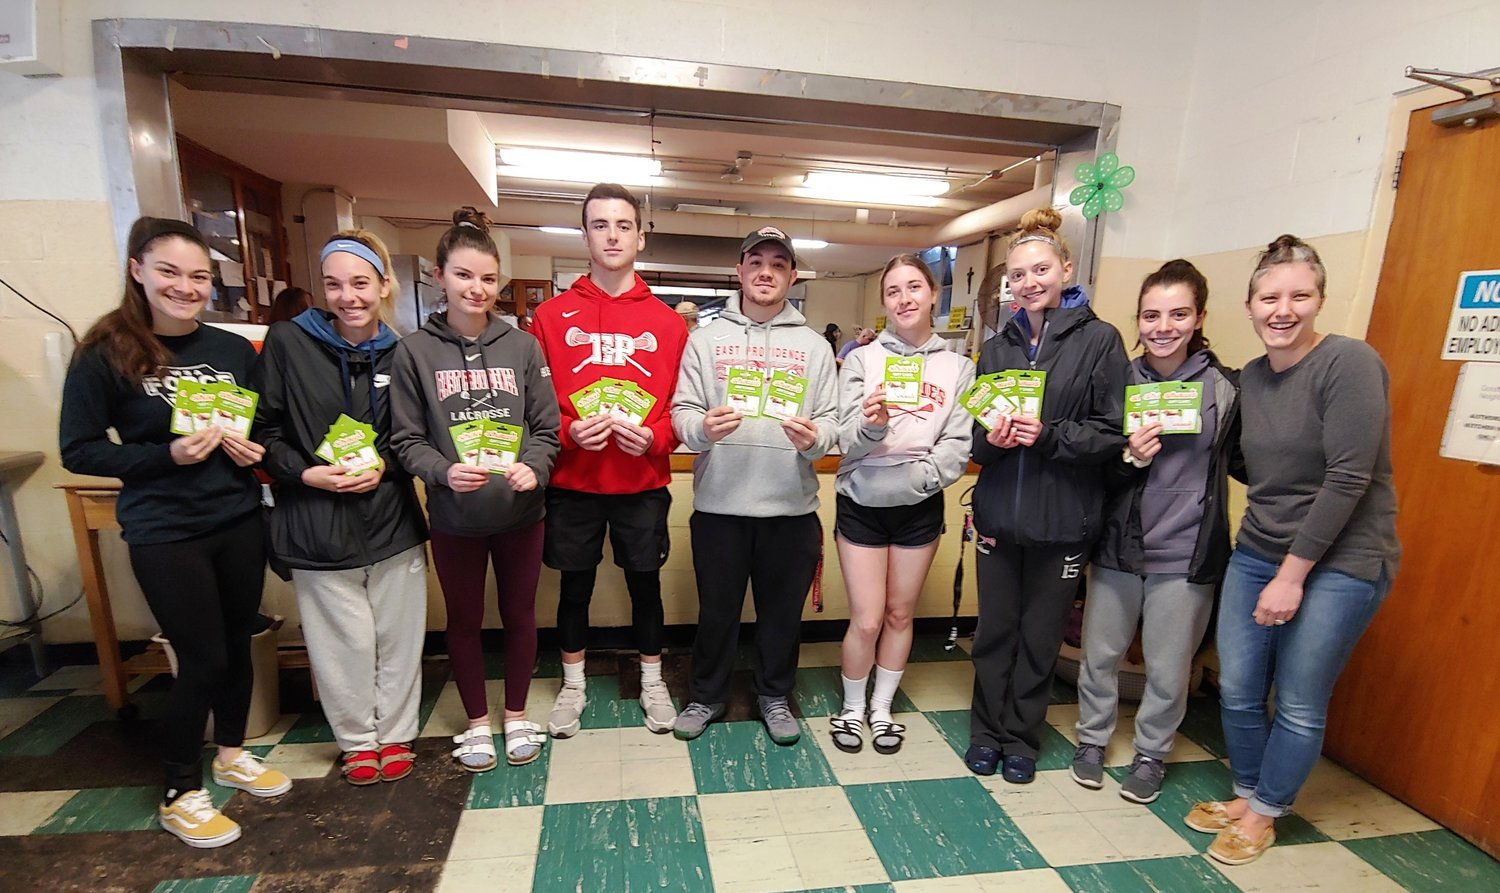 EPHS LAX Squads Make Food Donations to Community